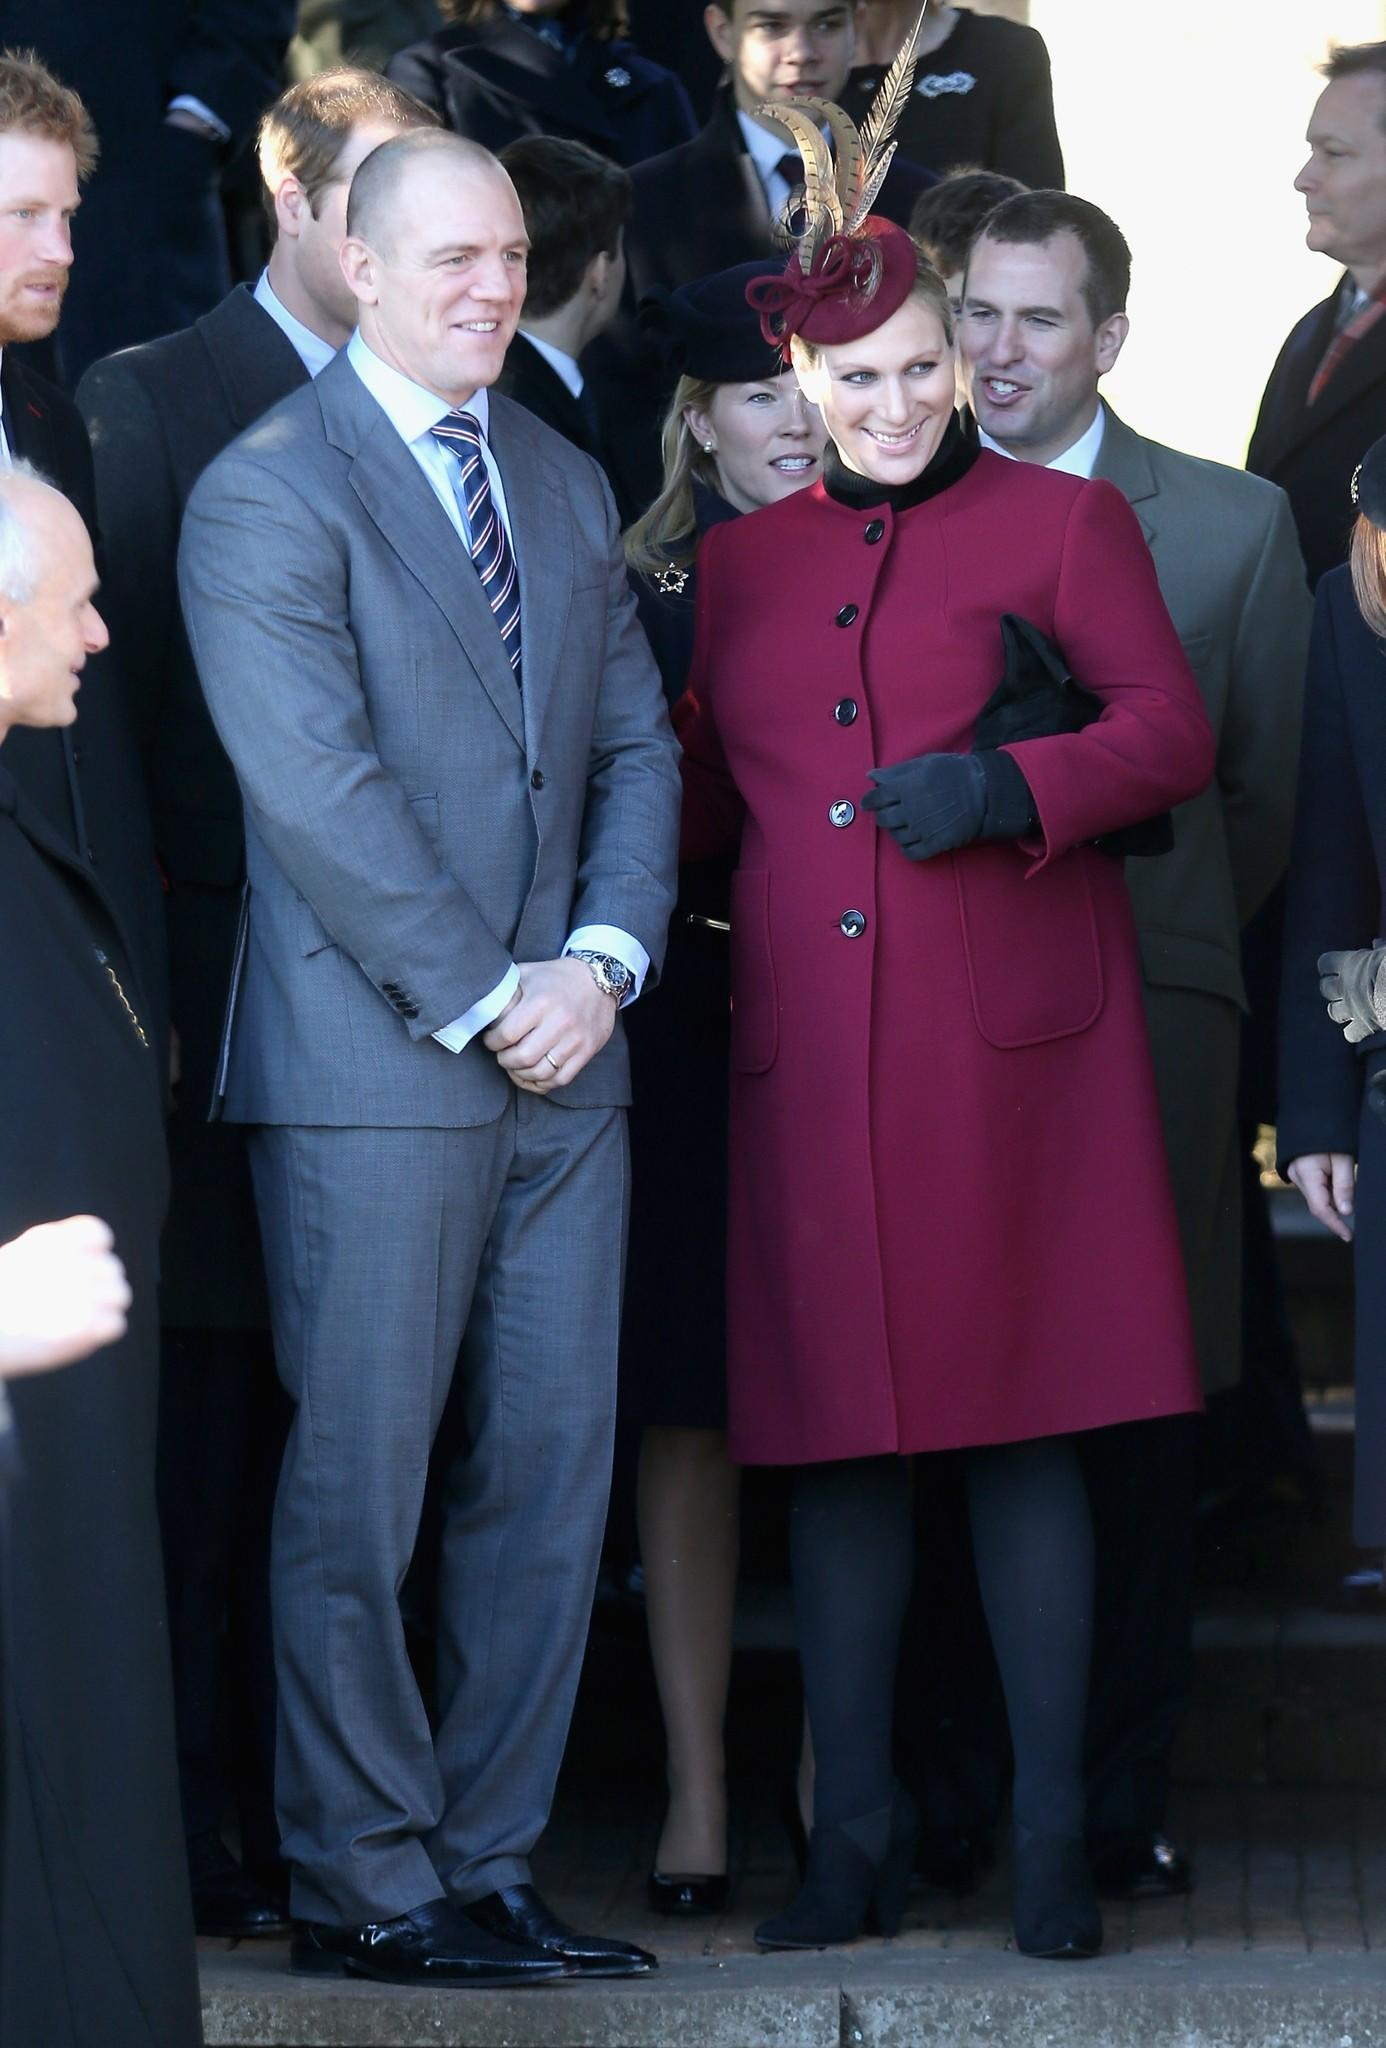 Zara Phillips and Mike Tindall leave the Christmas Day service at Sandringham on December 25, 2013 in King's Lynn, England.